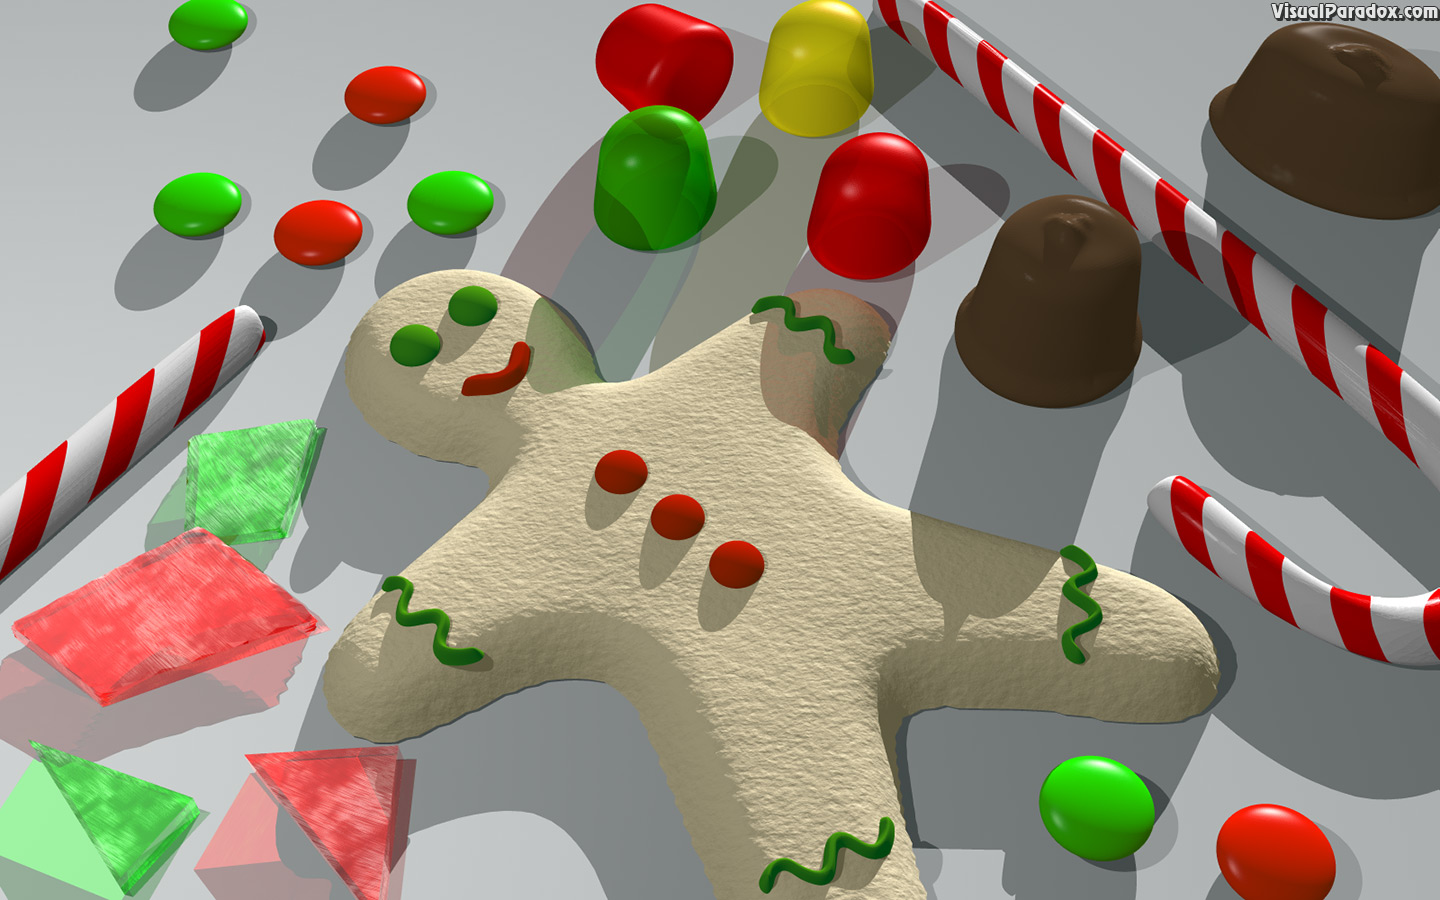 gingerbread, candy cane, gumdrops, cookies, hard, glass, chocolate, holiday, christmas, 3d, wallpaper